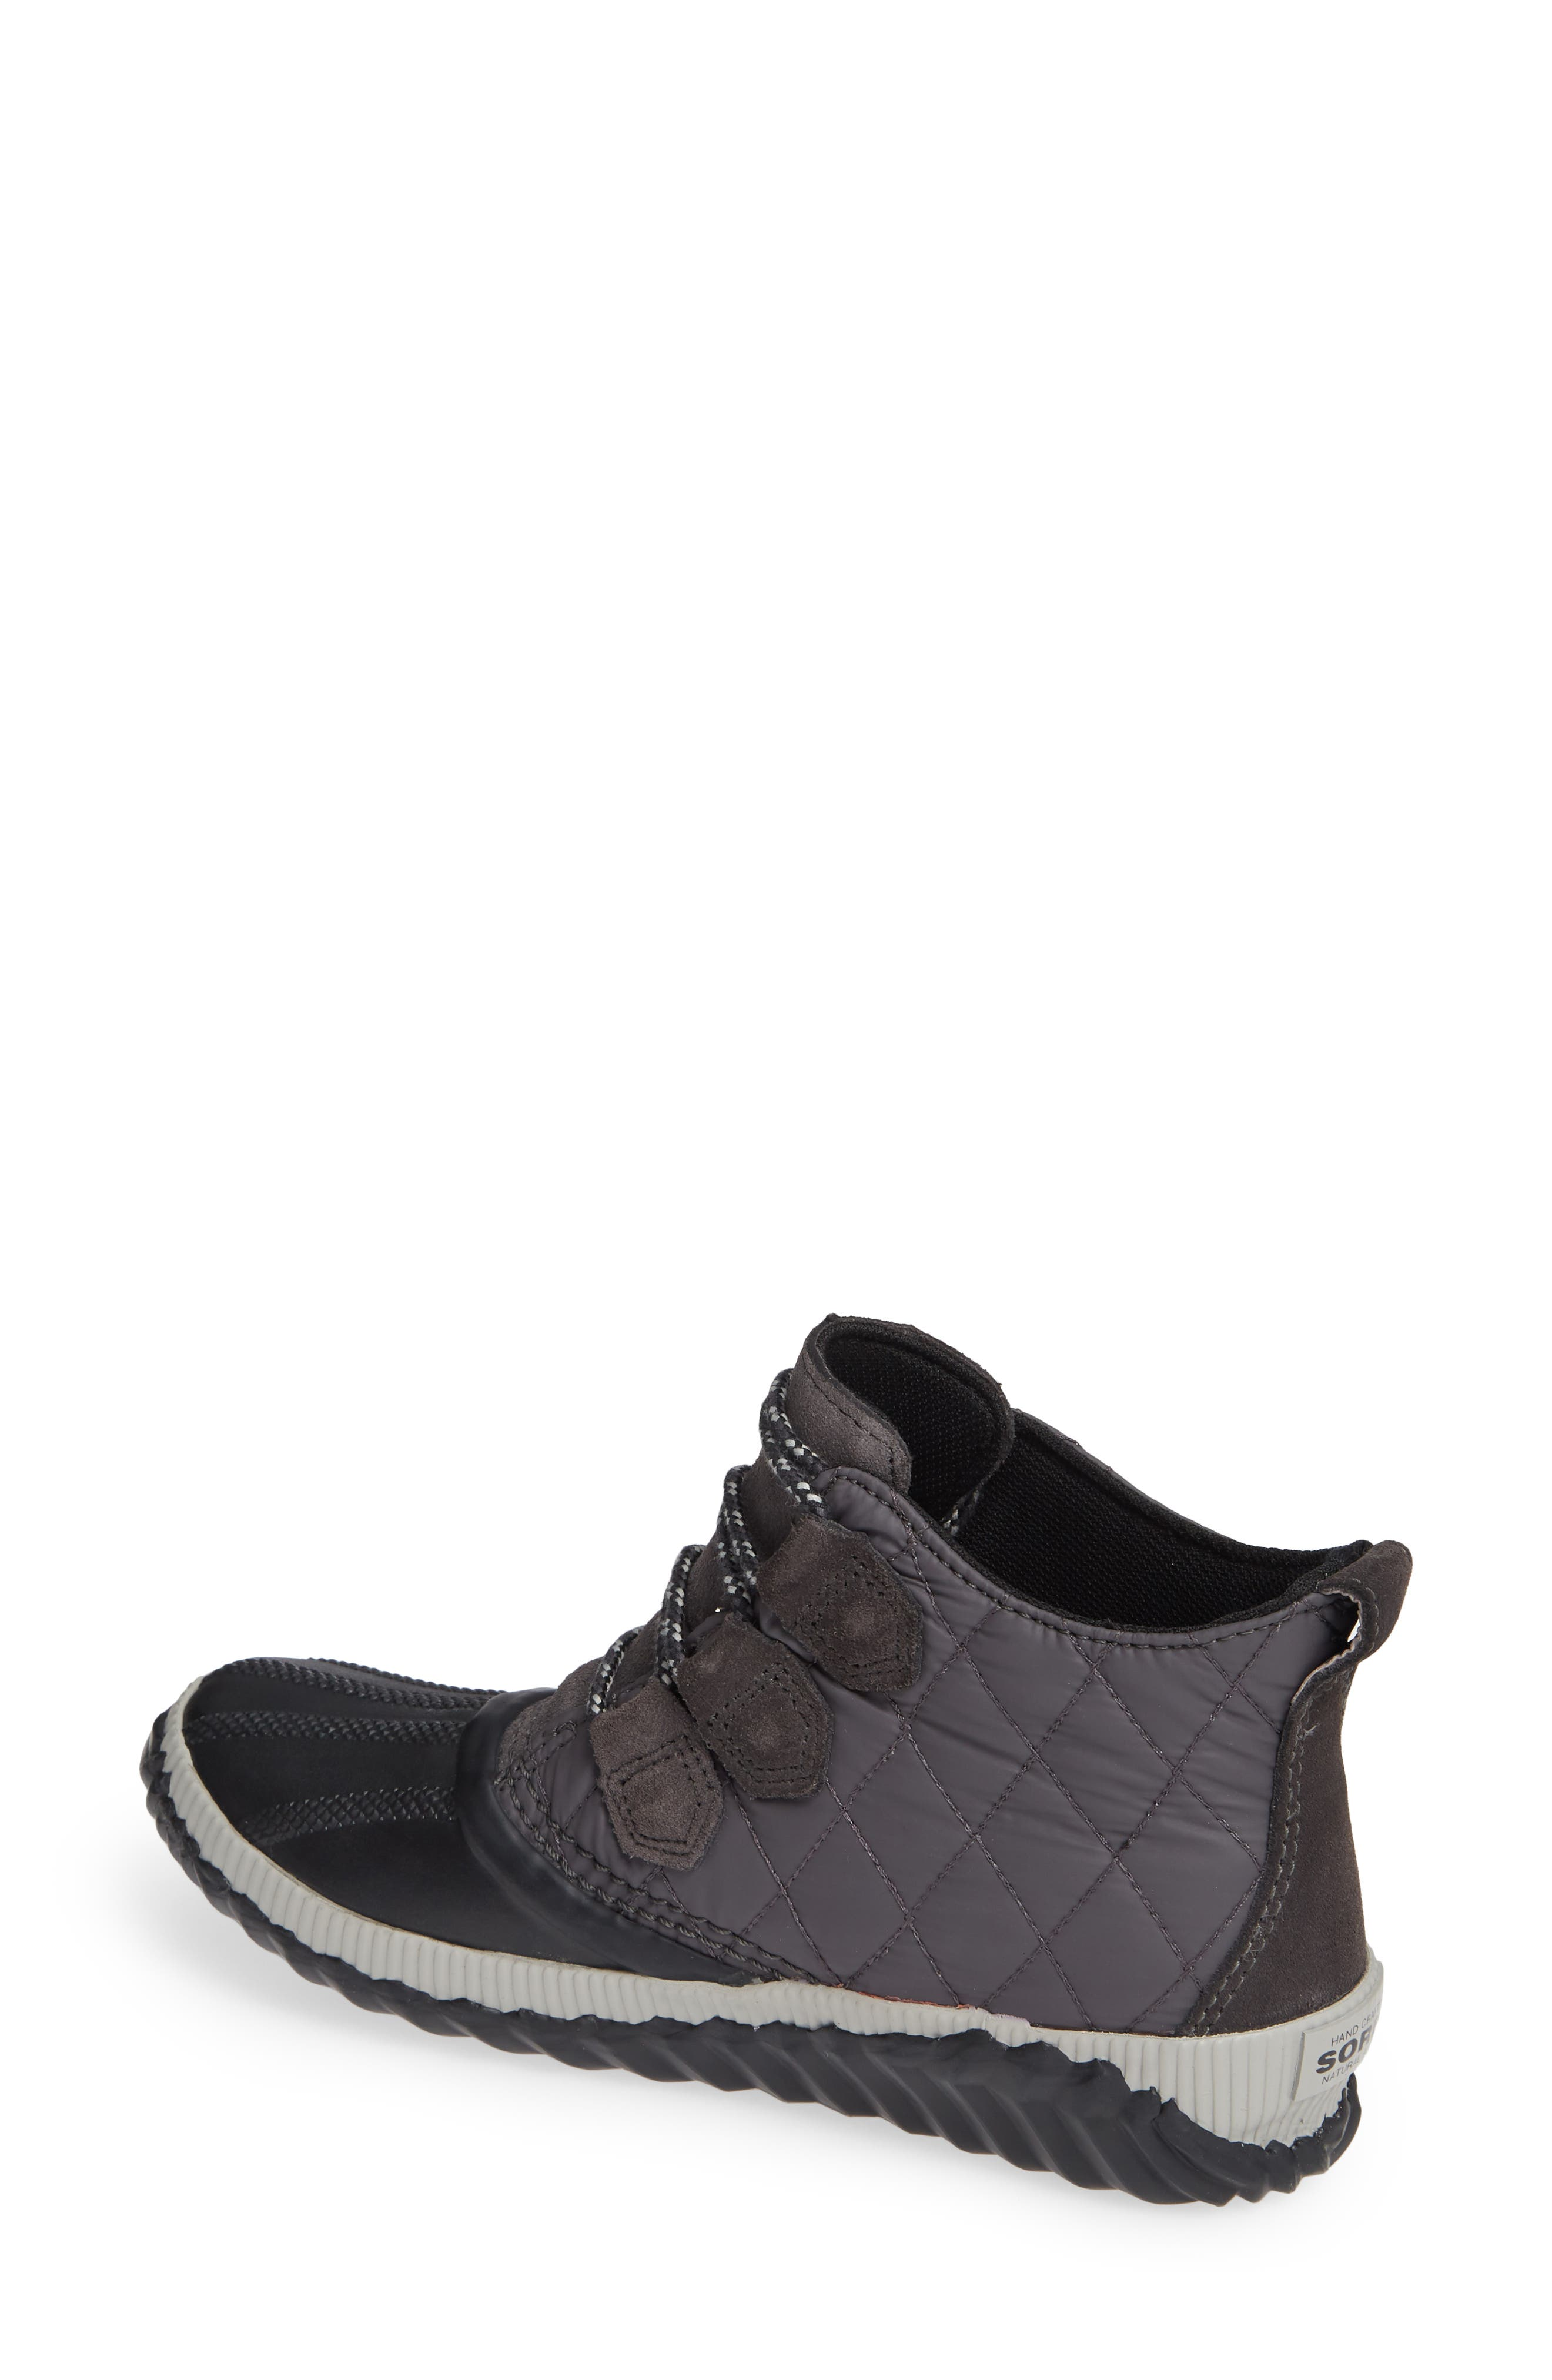 Out N About Plus Camp Waterproof Bootie,                             Alternate thumbnail 2, color,                             SLATE GREY/ BLACK